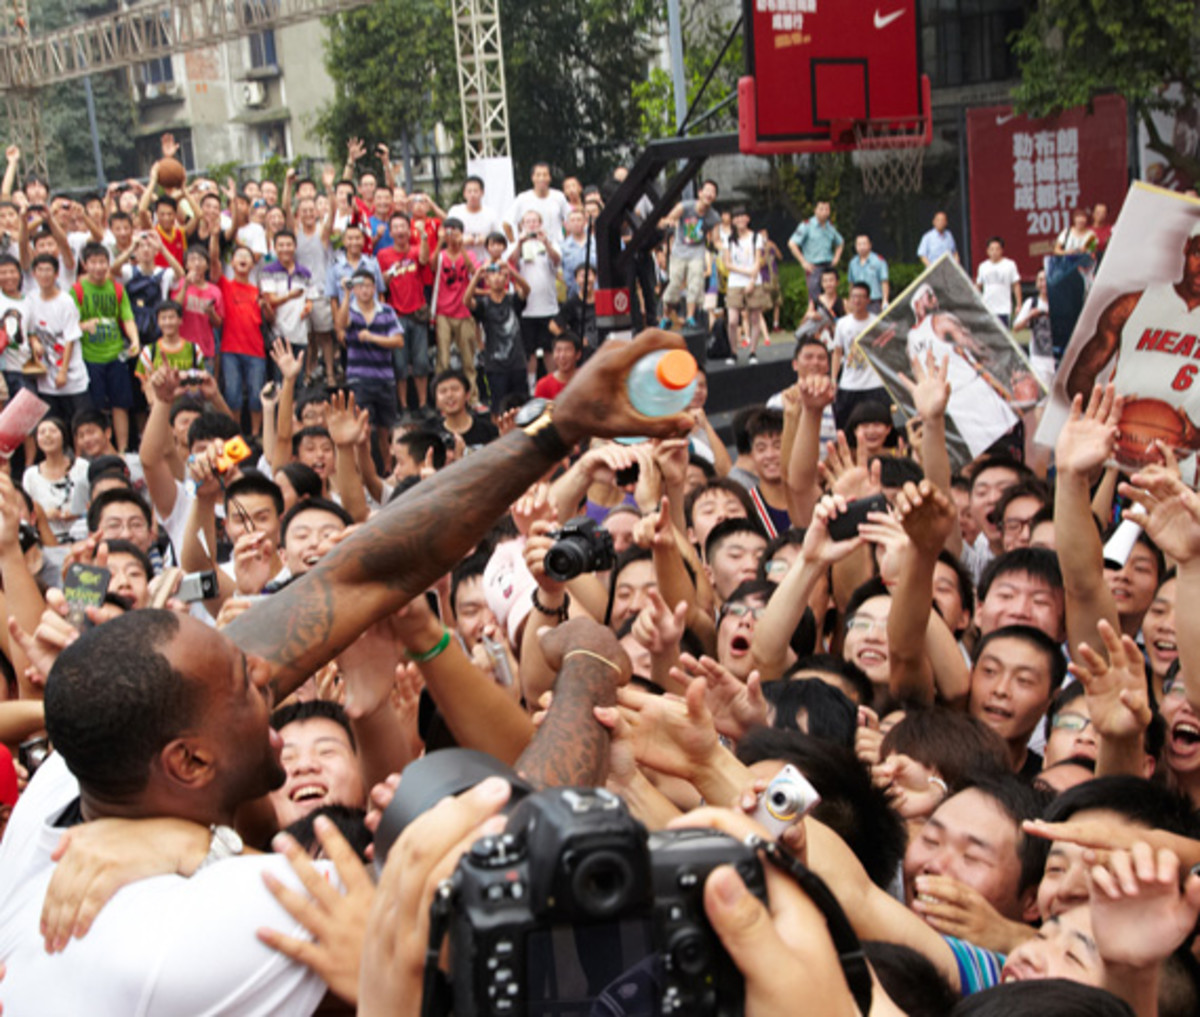 lebron-james-basketball-tour-china-2011-chengdu-01